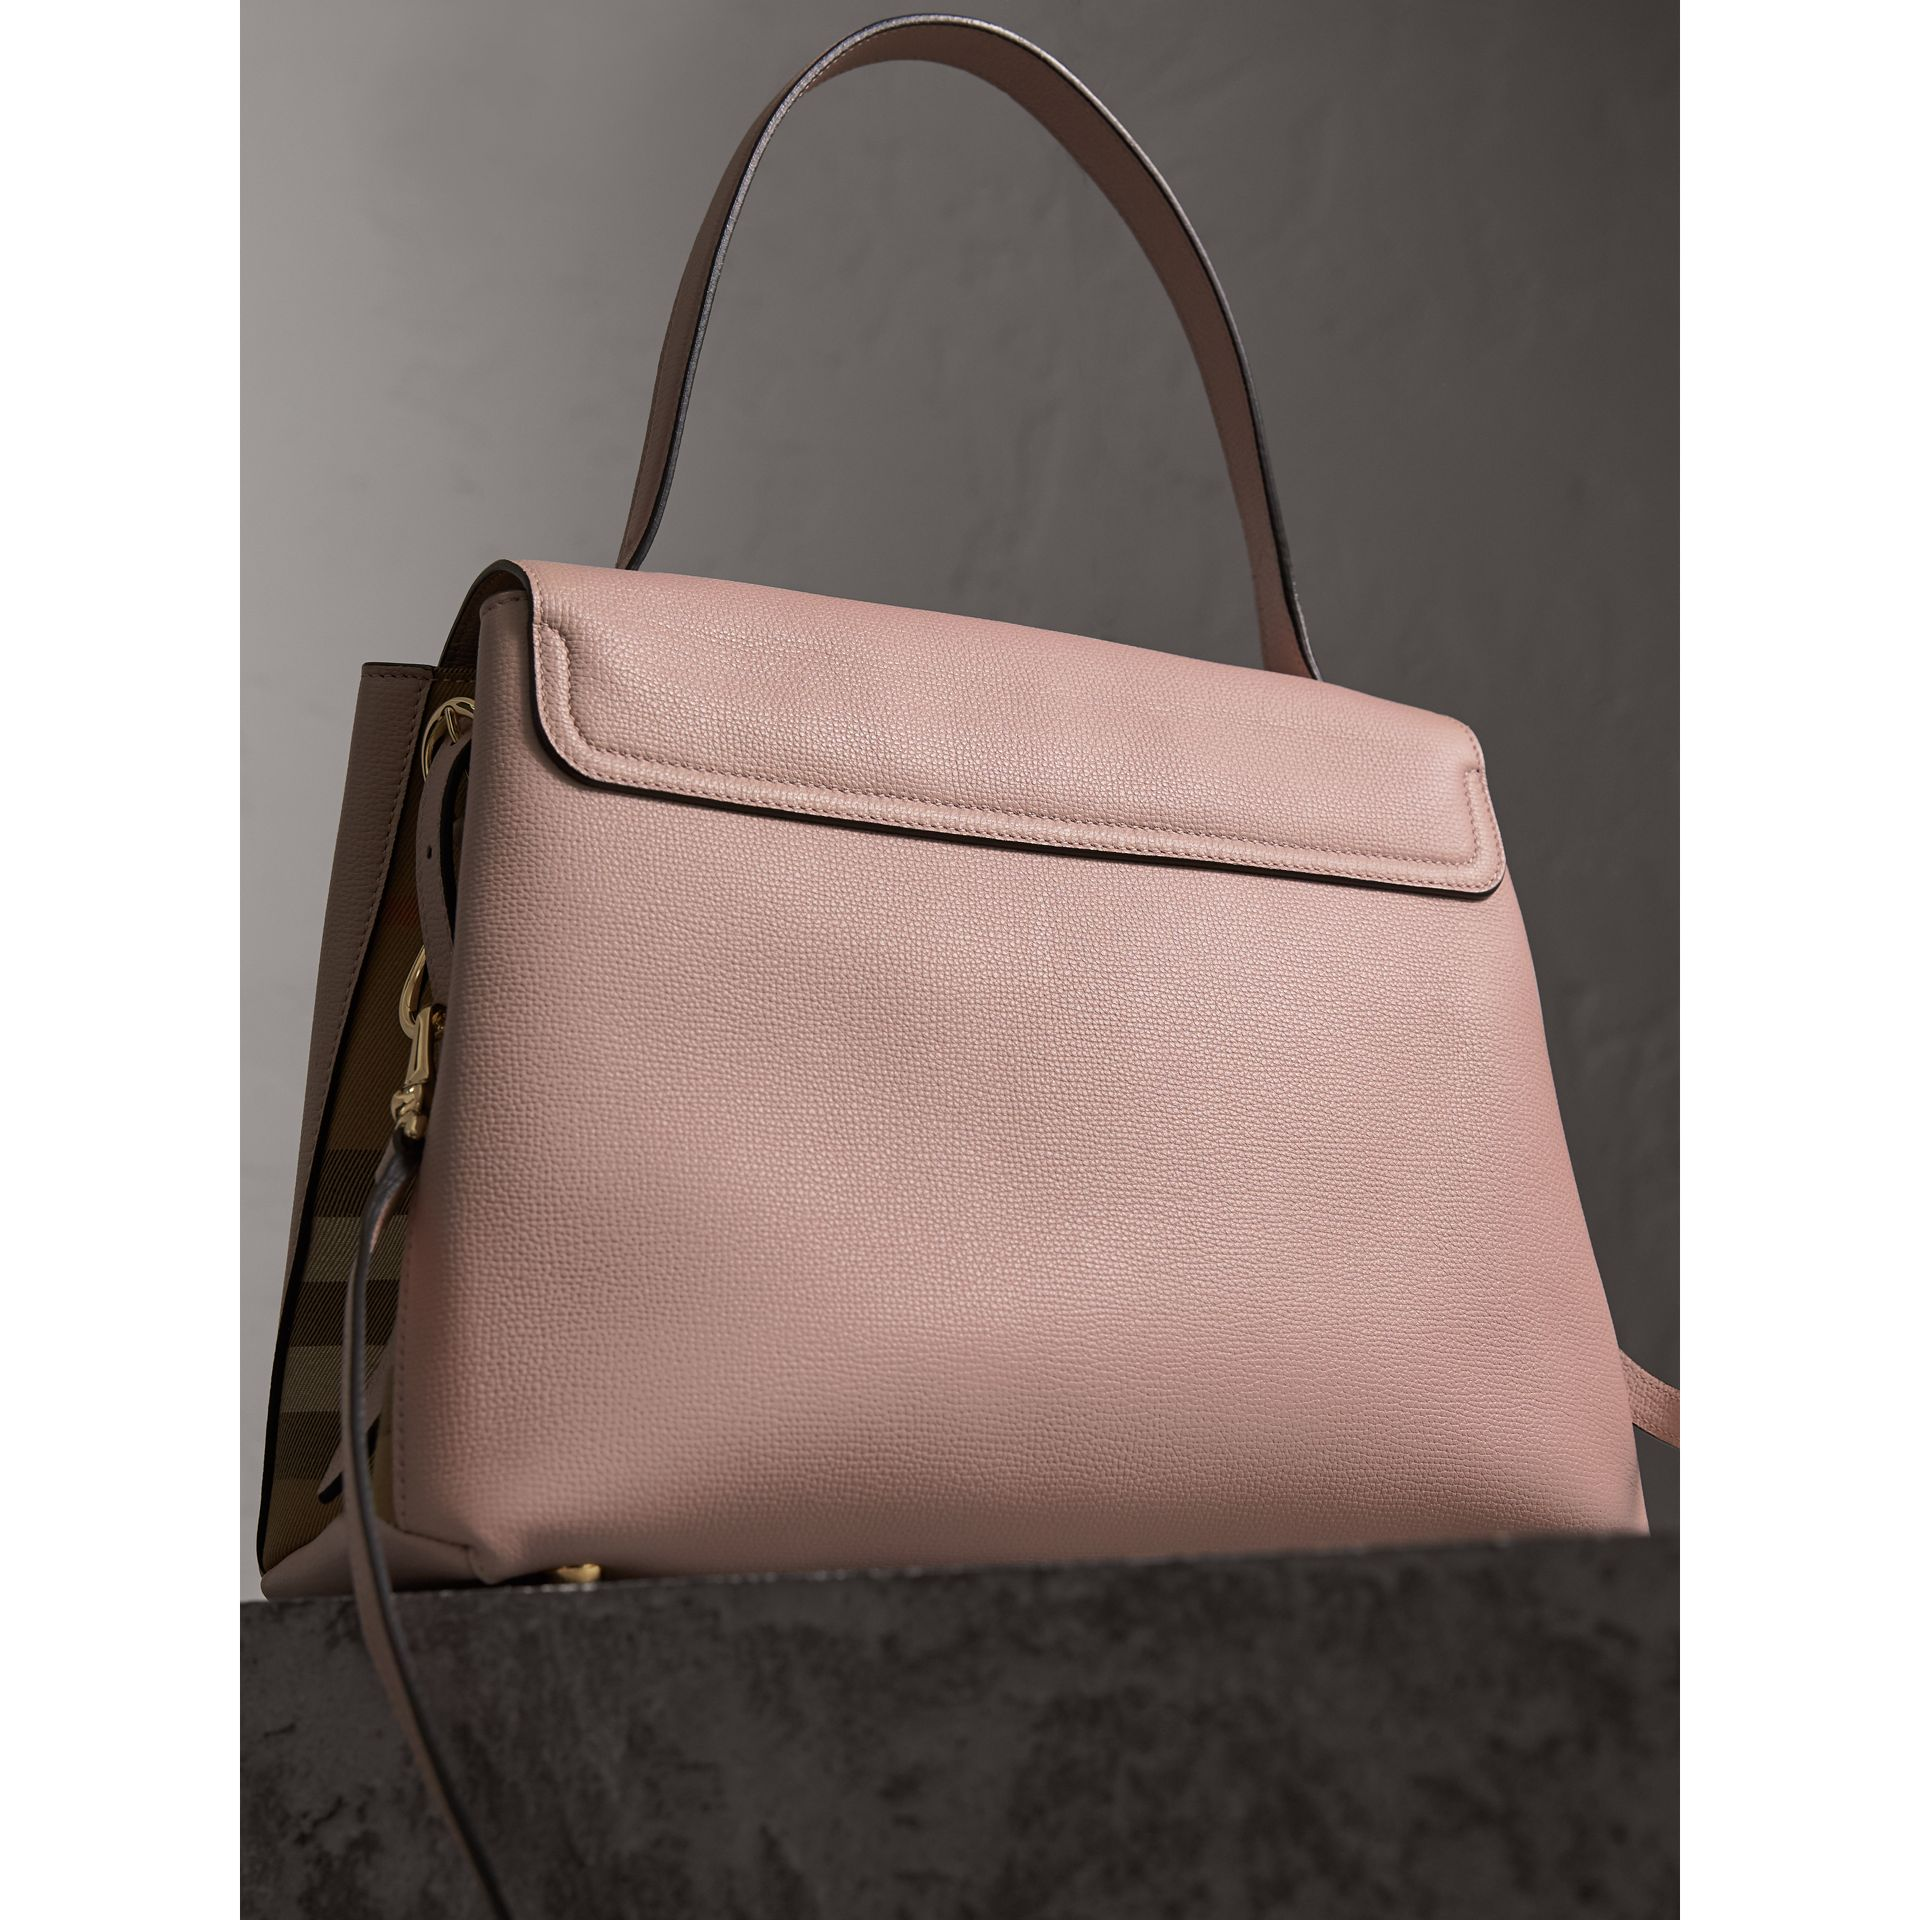 Medium Grainy Leather and House Check Tote Bag in Pale Orchid - Women | Burberry Hong Kong - gallery image 4